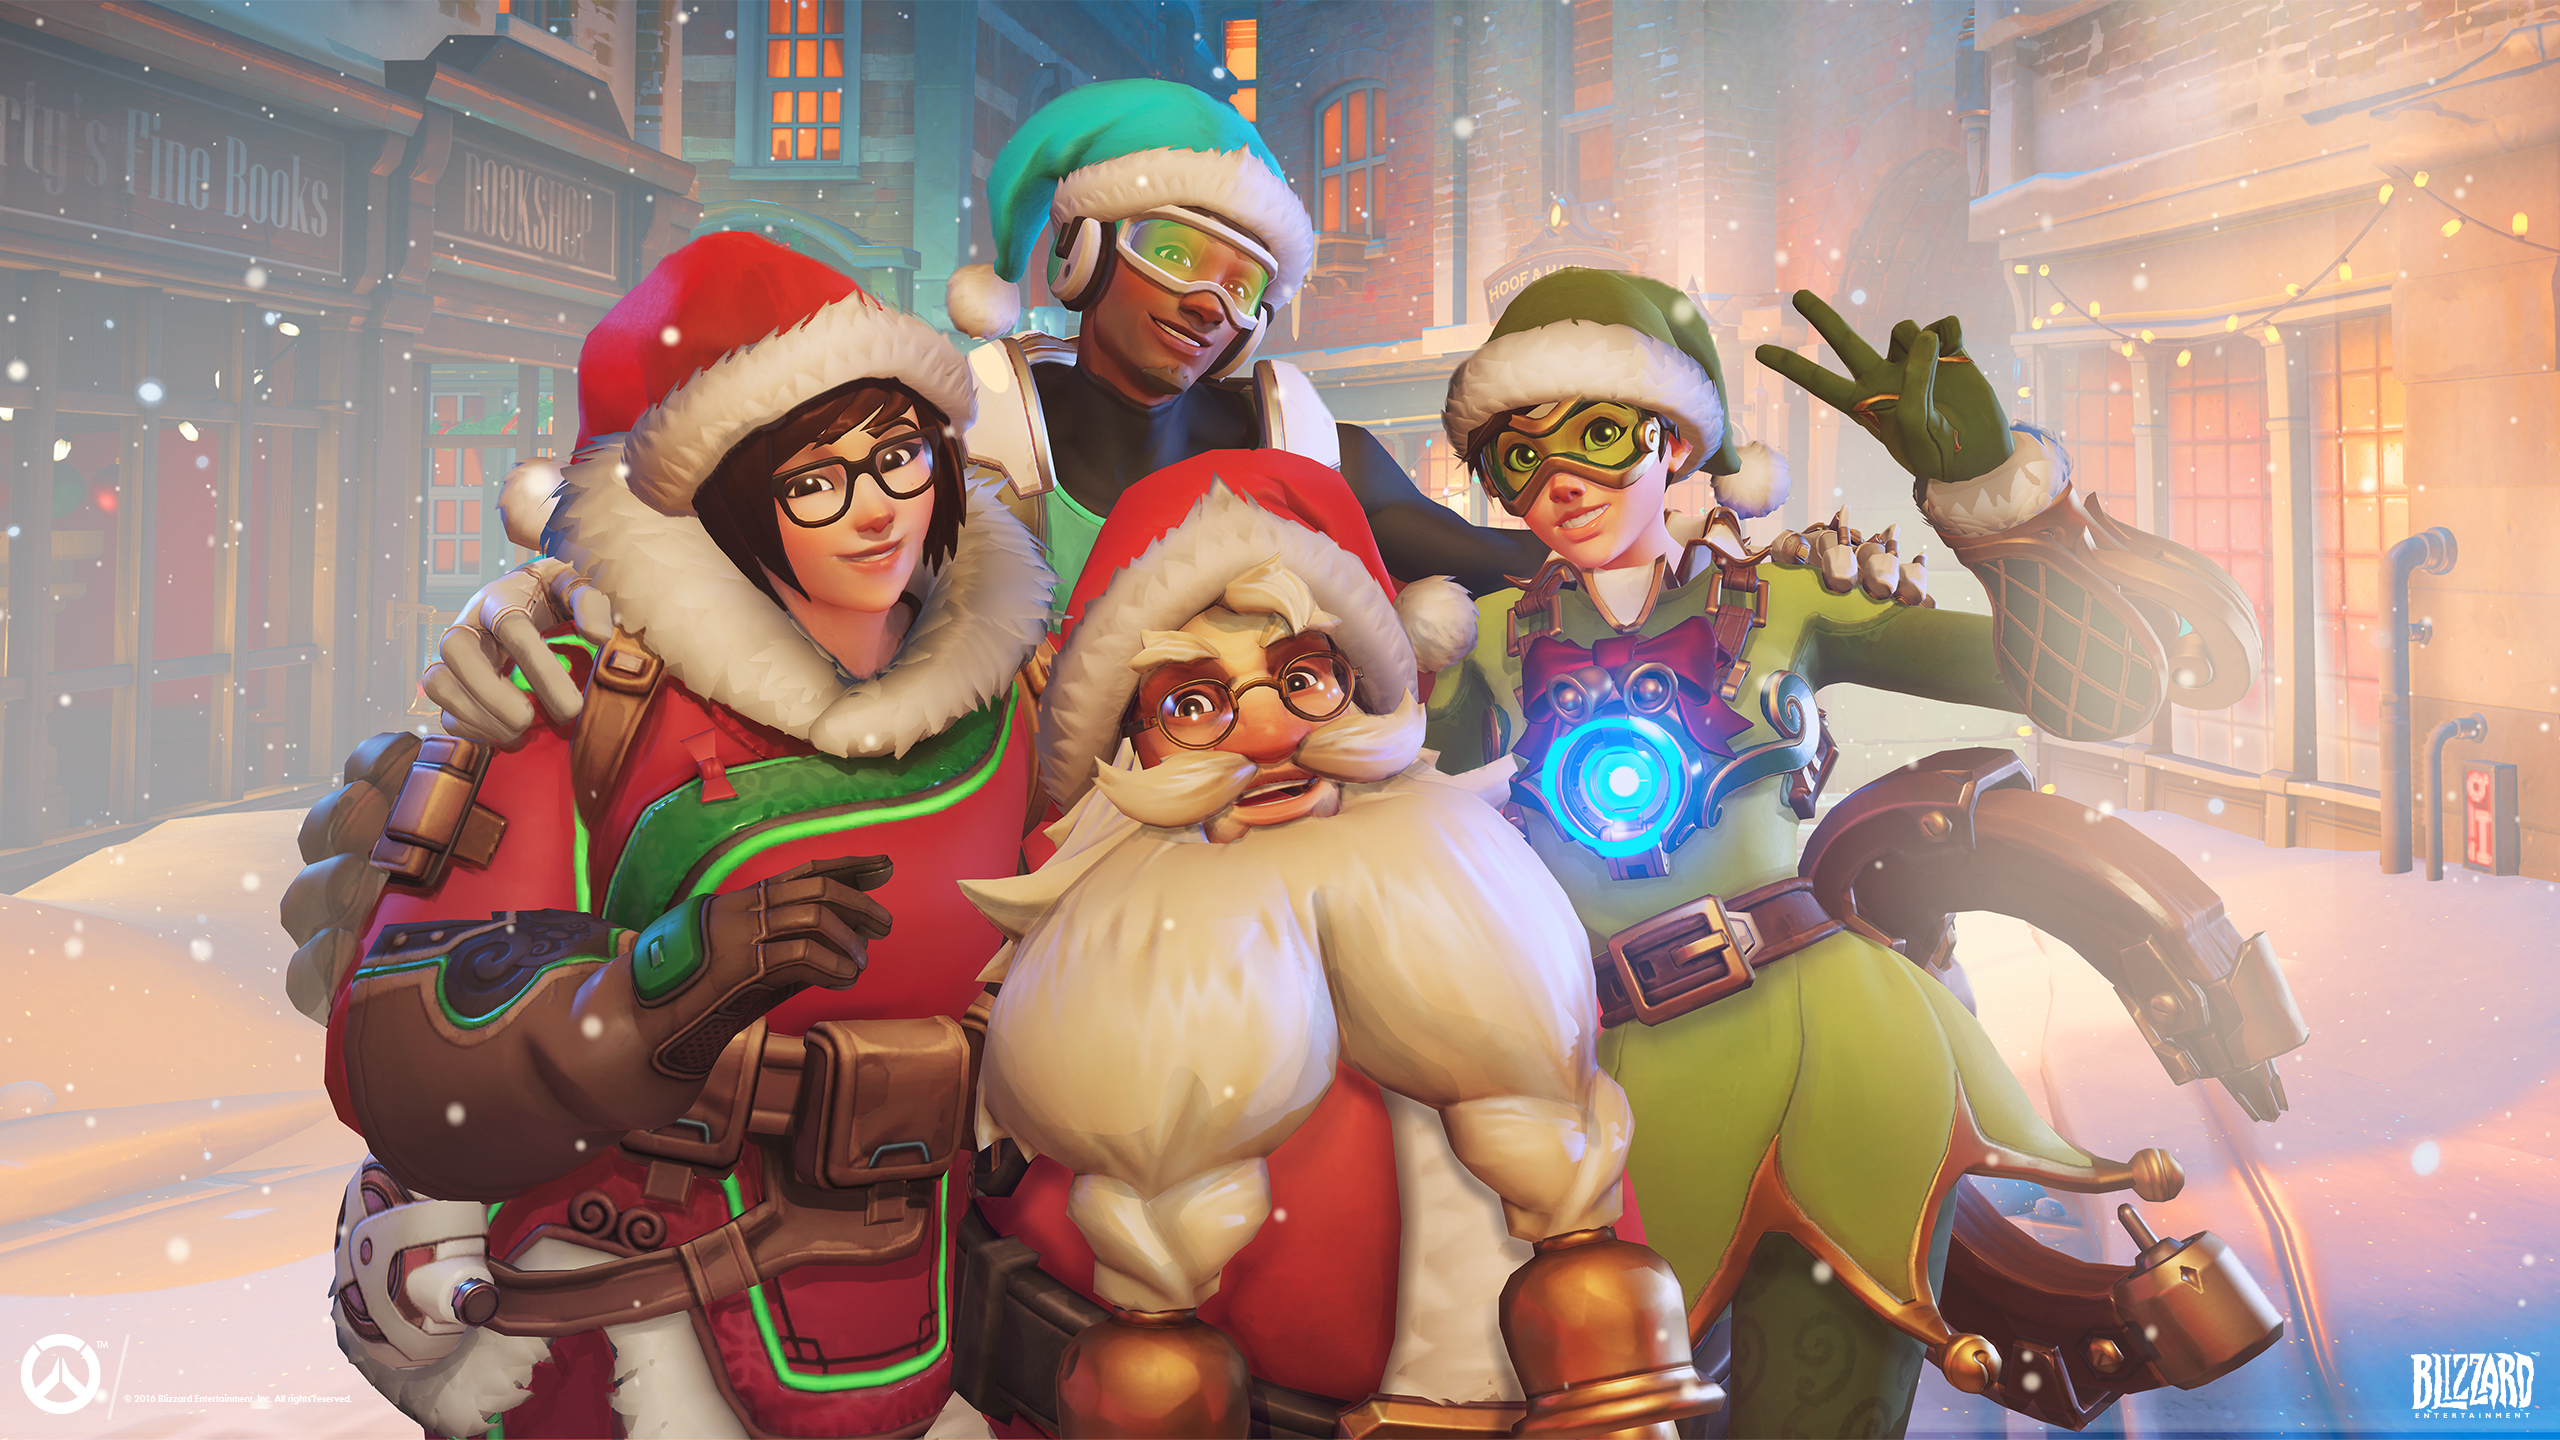 Overwatch wallpaper 2179391 zerochan anime image board - Overwatch christmas wallpaper ...